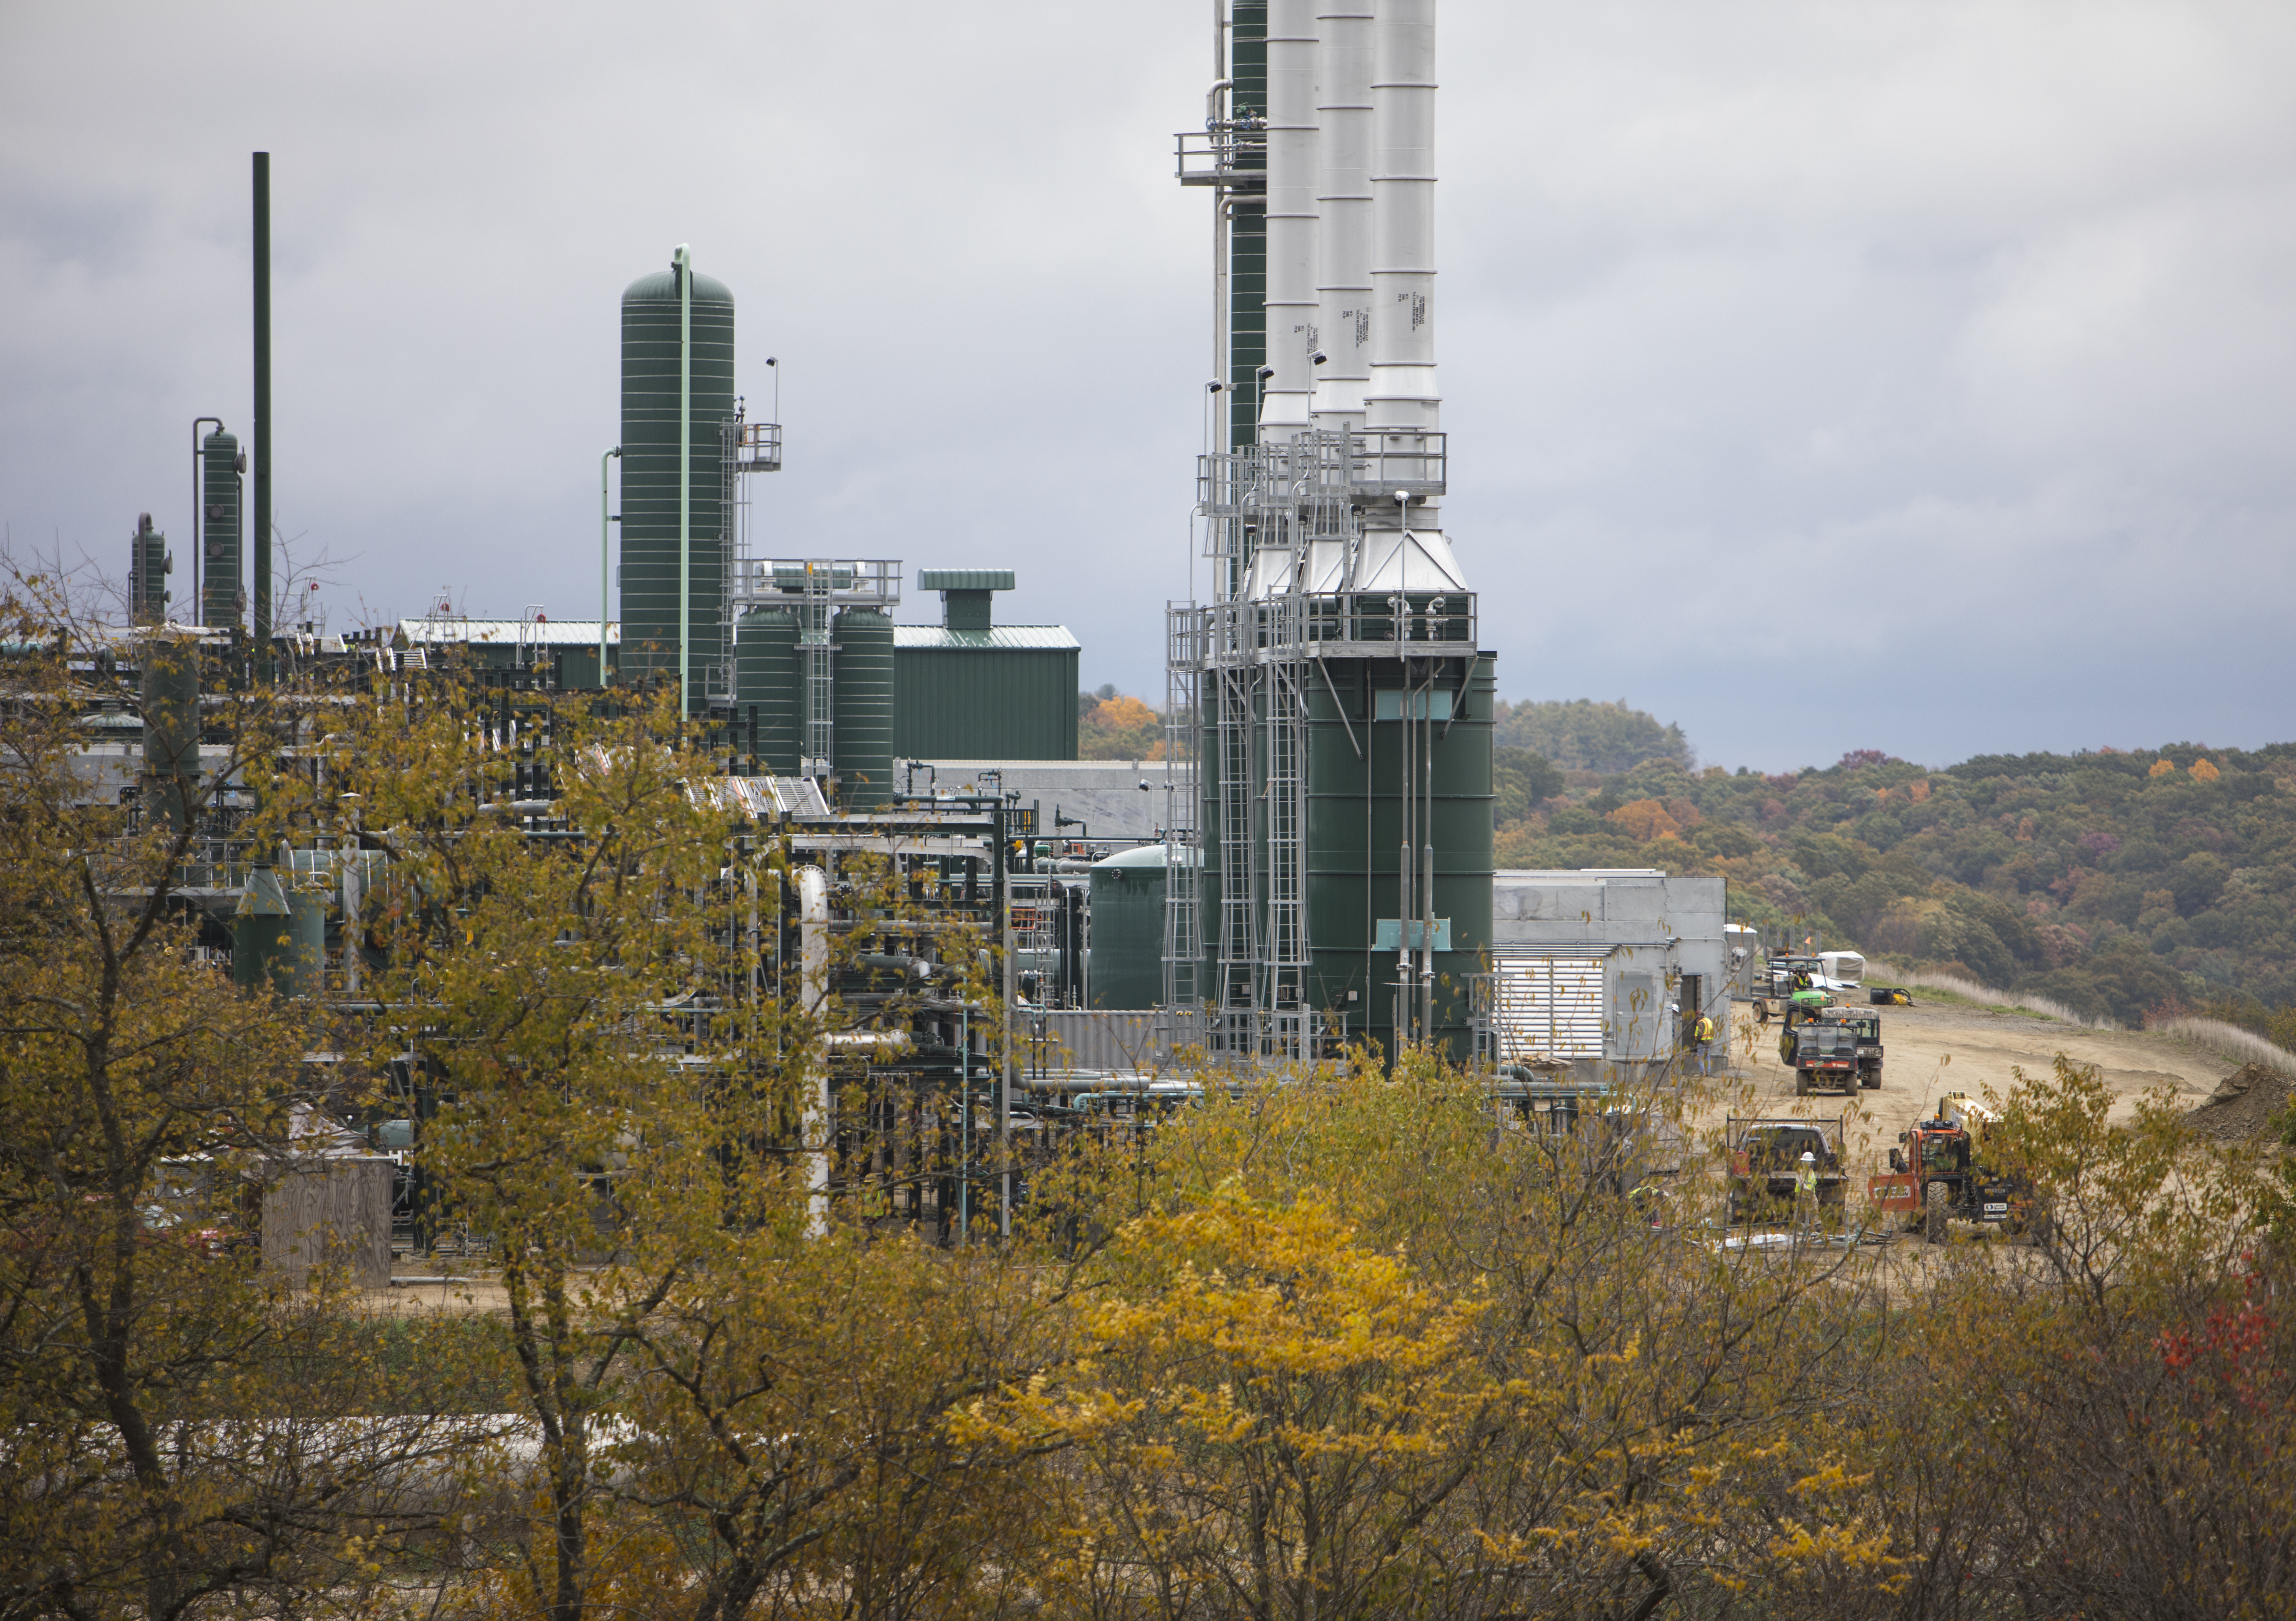 Gigawatts of planned natural gas plants despite low electricity